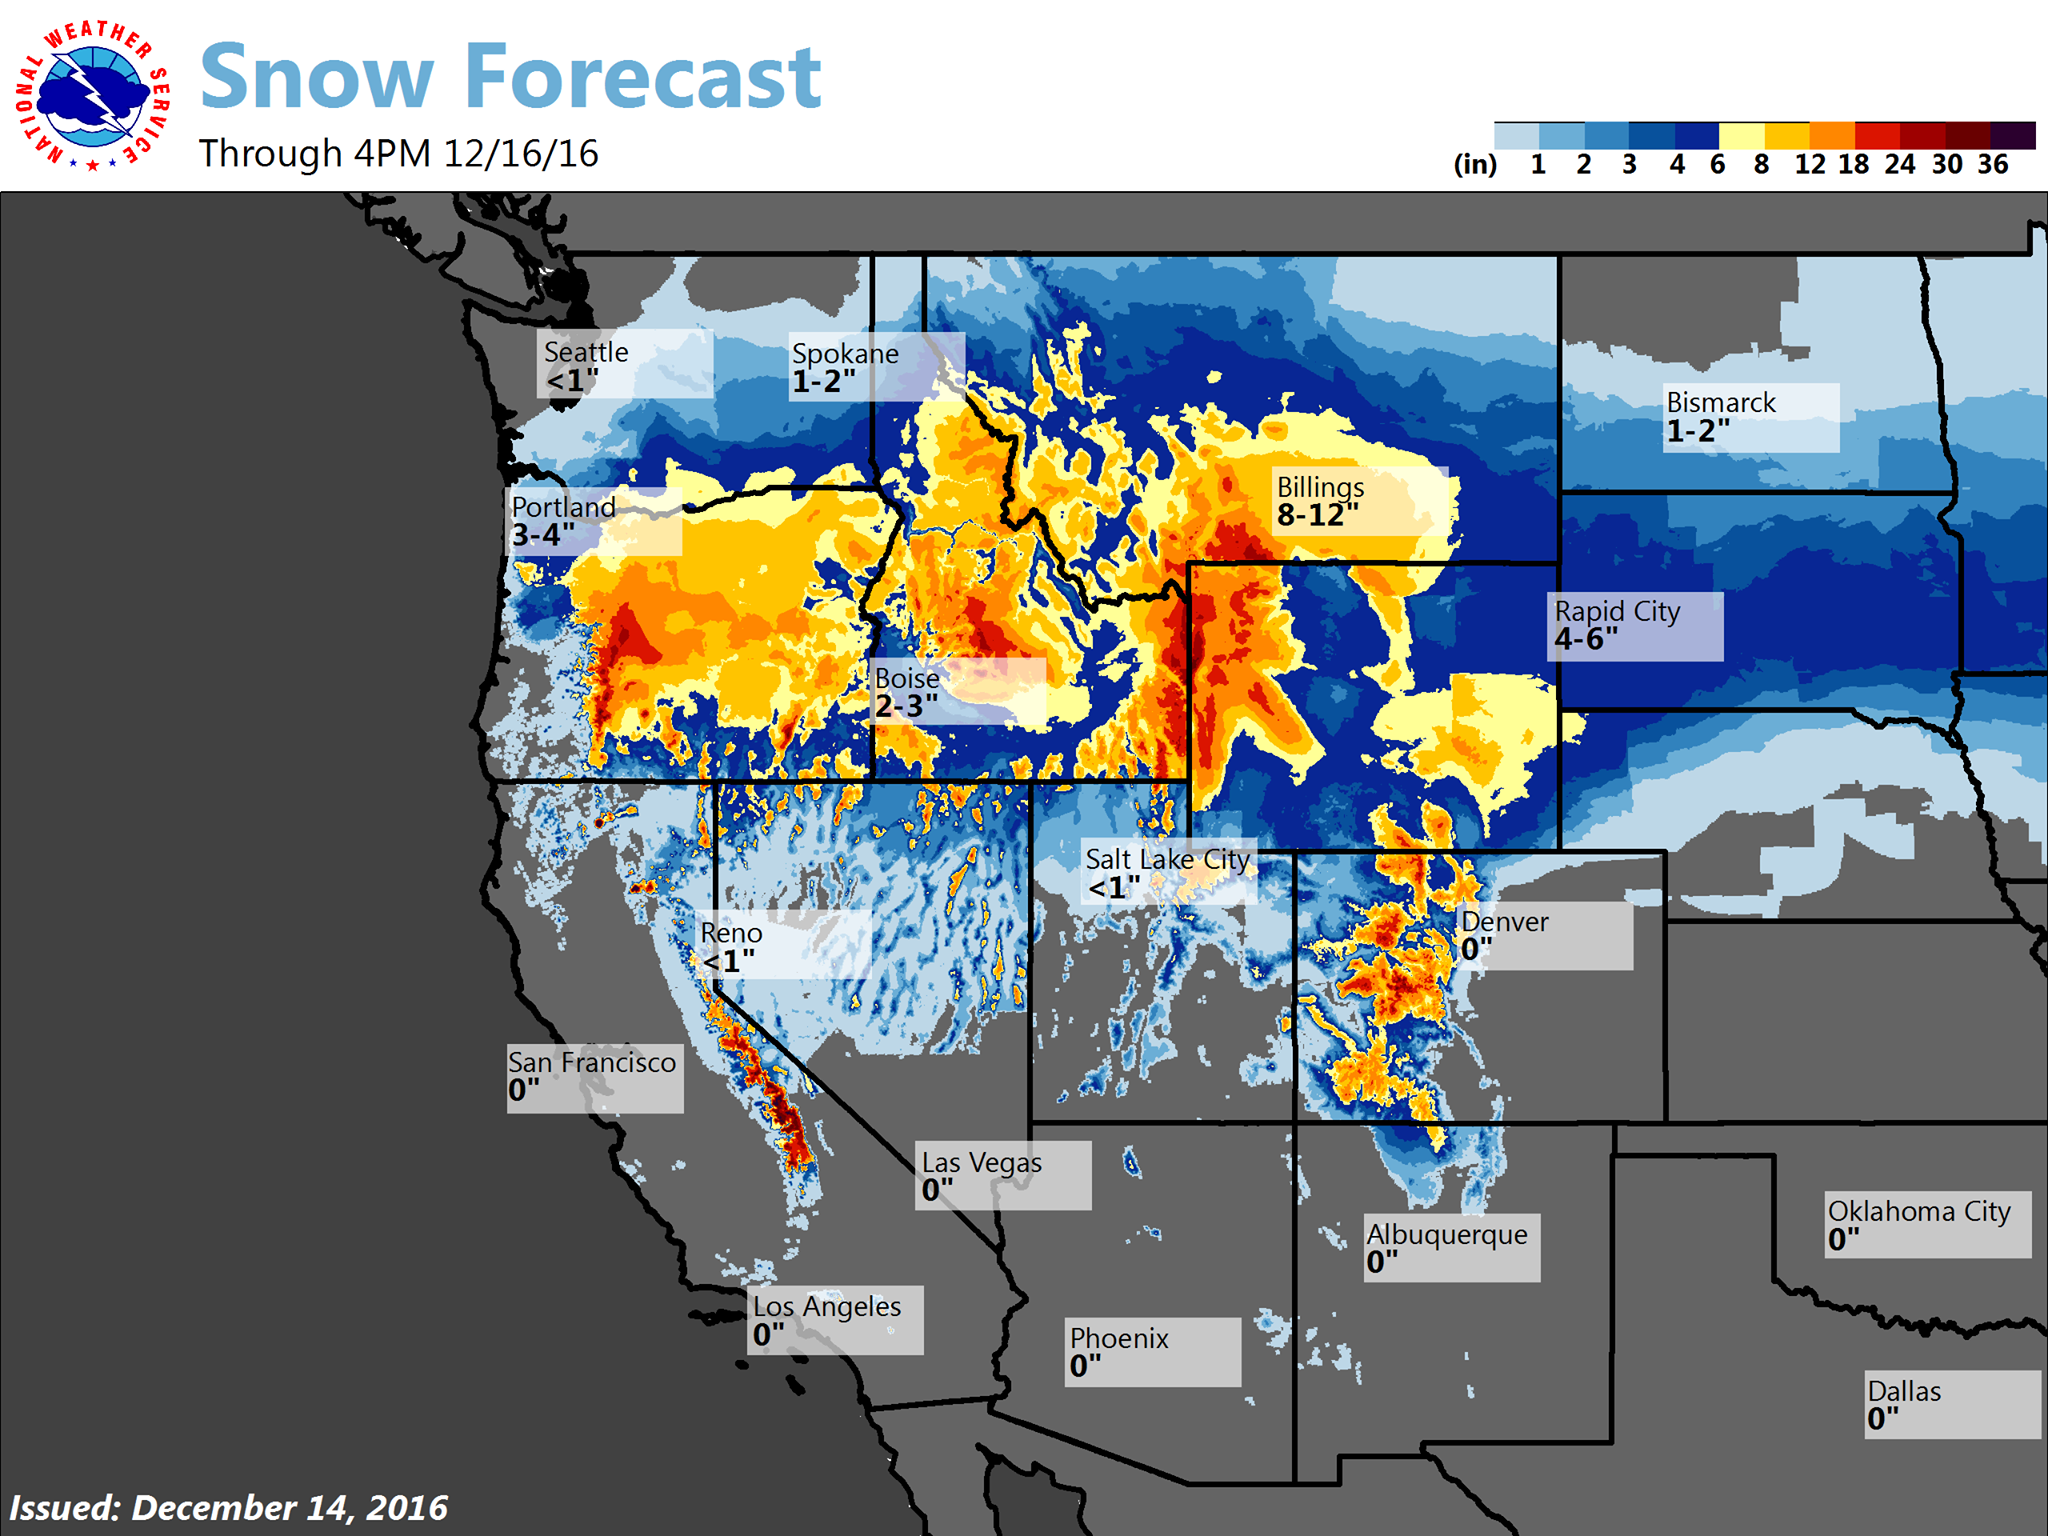 Big snow forecast in the western USA today and tomorrow.  image:  noaa, today